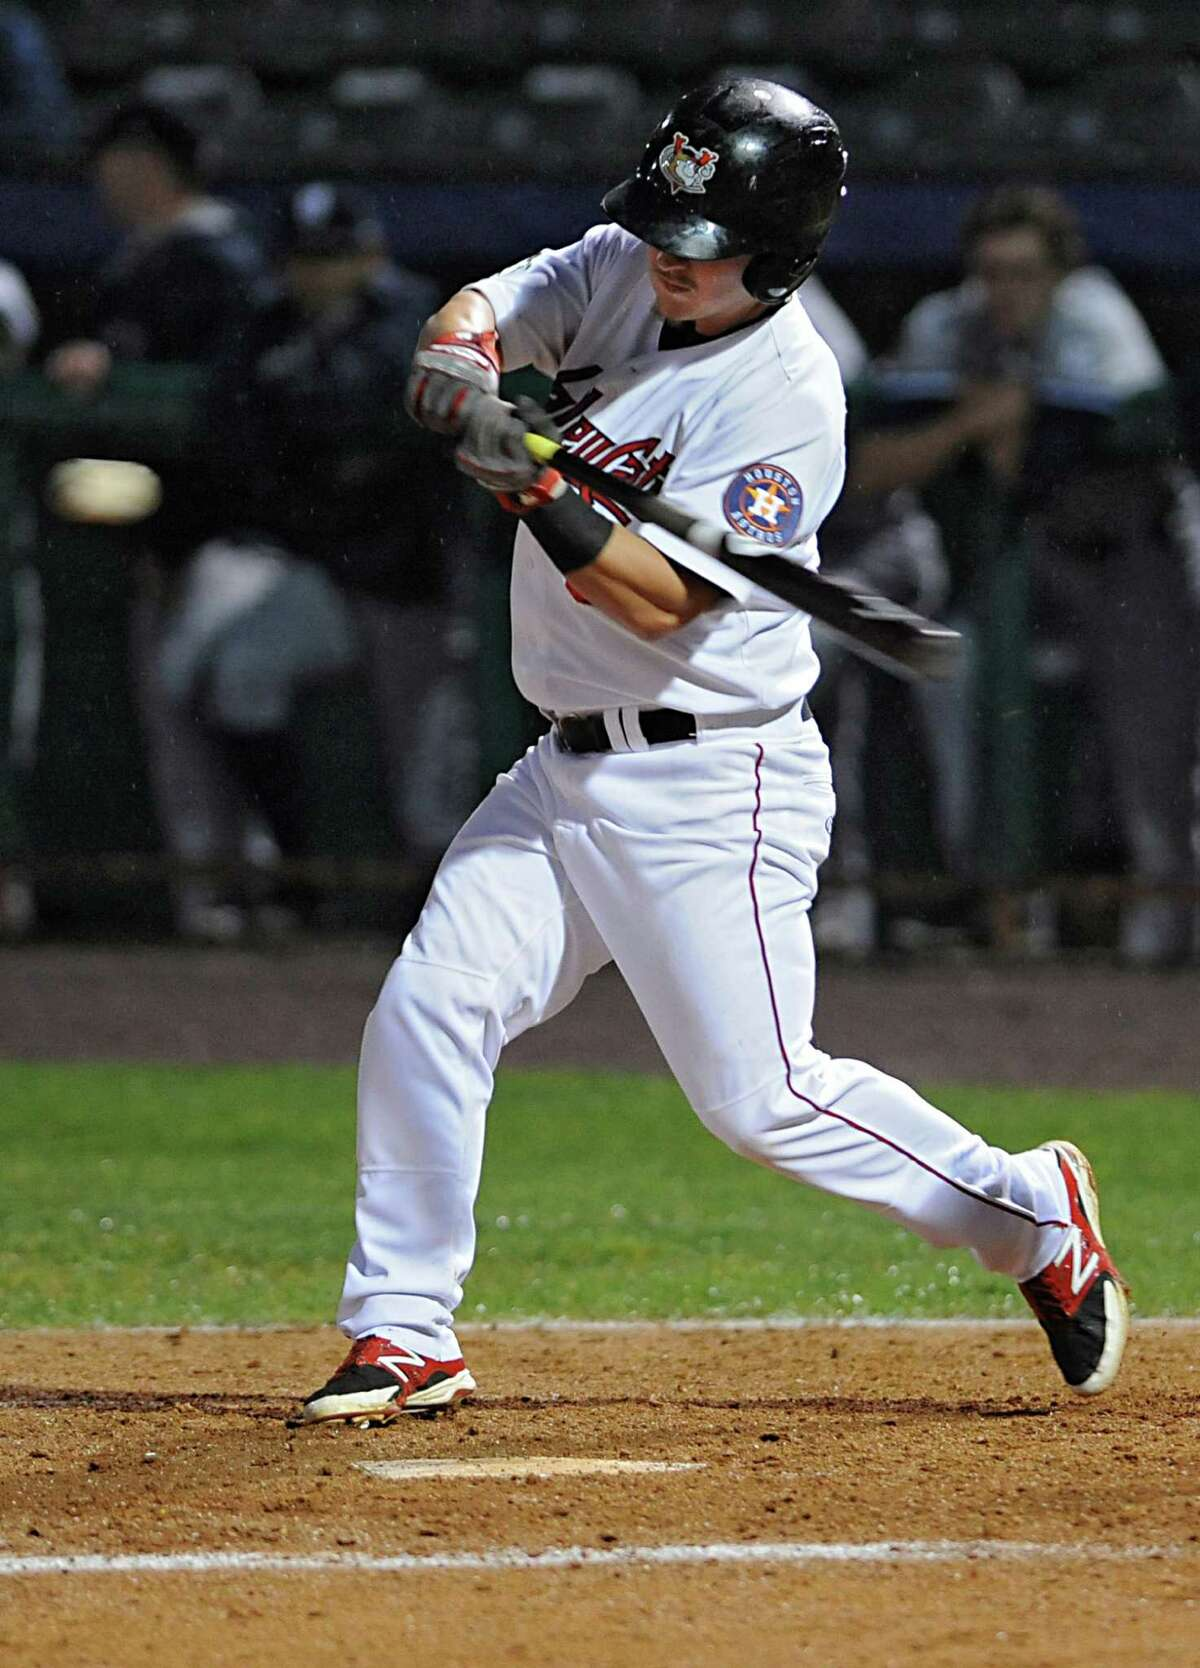 Tri-City ValleyCats' Brooks Marlow swings for the ball during a baseball game against the Staten Island Yankees at Joe Bruno Stadium on Thursday, Sept. 10, 2015 in Troy, N.Y. Tonight was Game 2 of the New York-Penn League semifinals. (Lori Van Buren / Times Union)